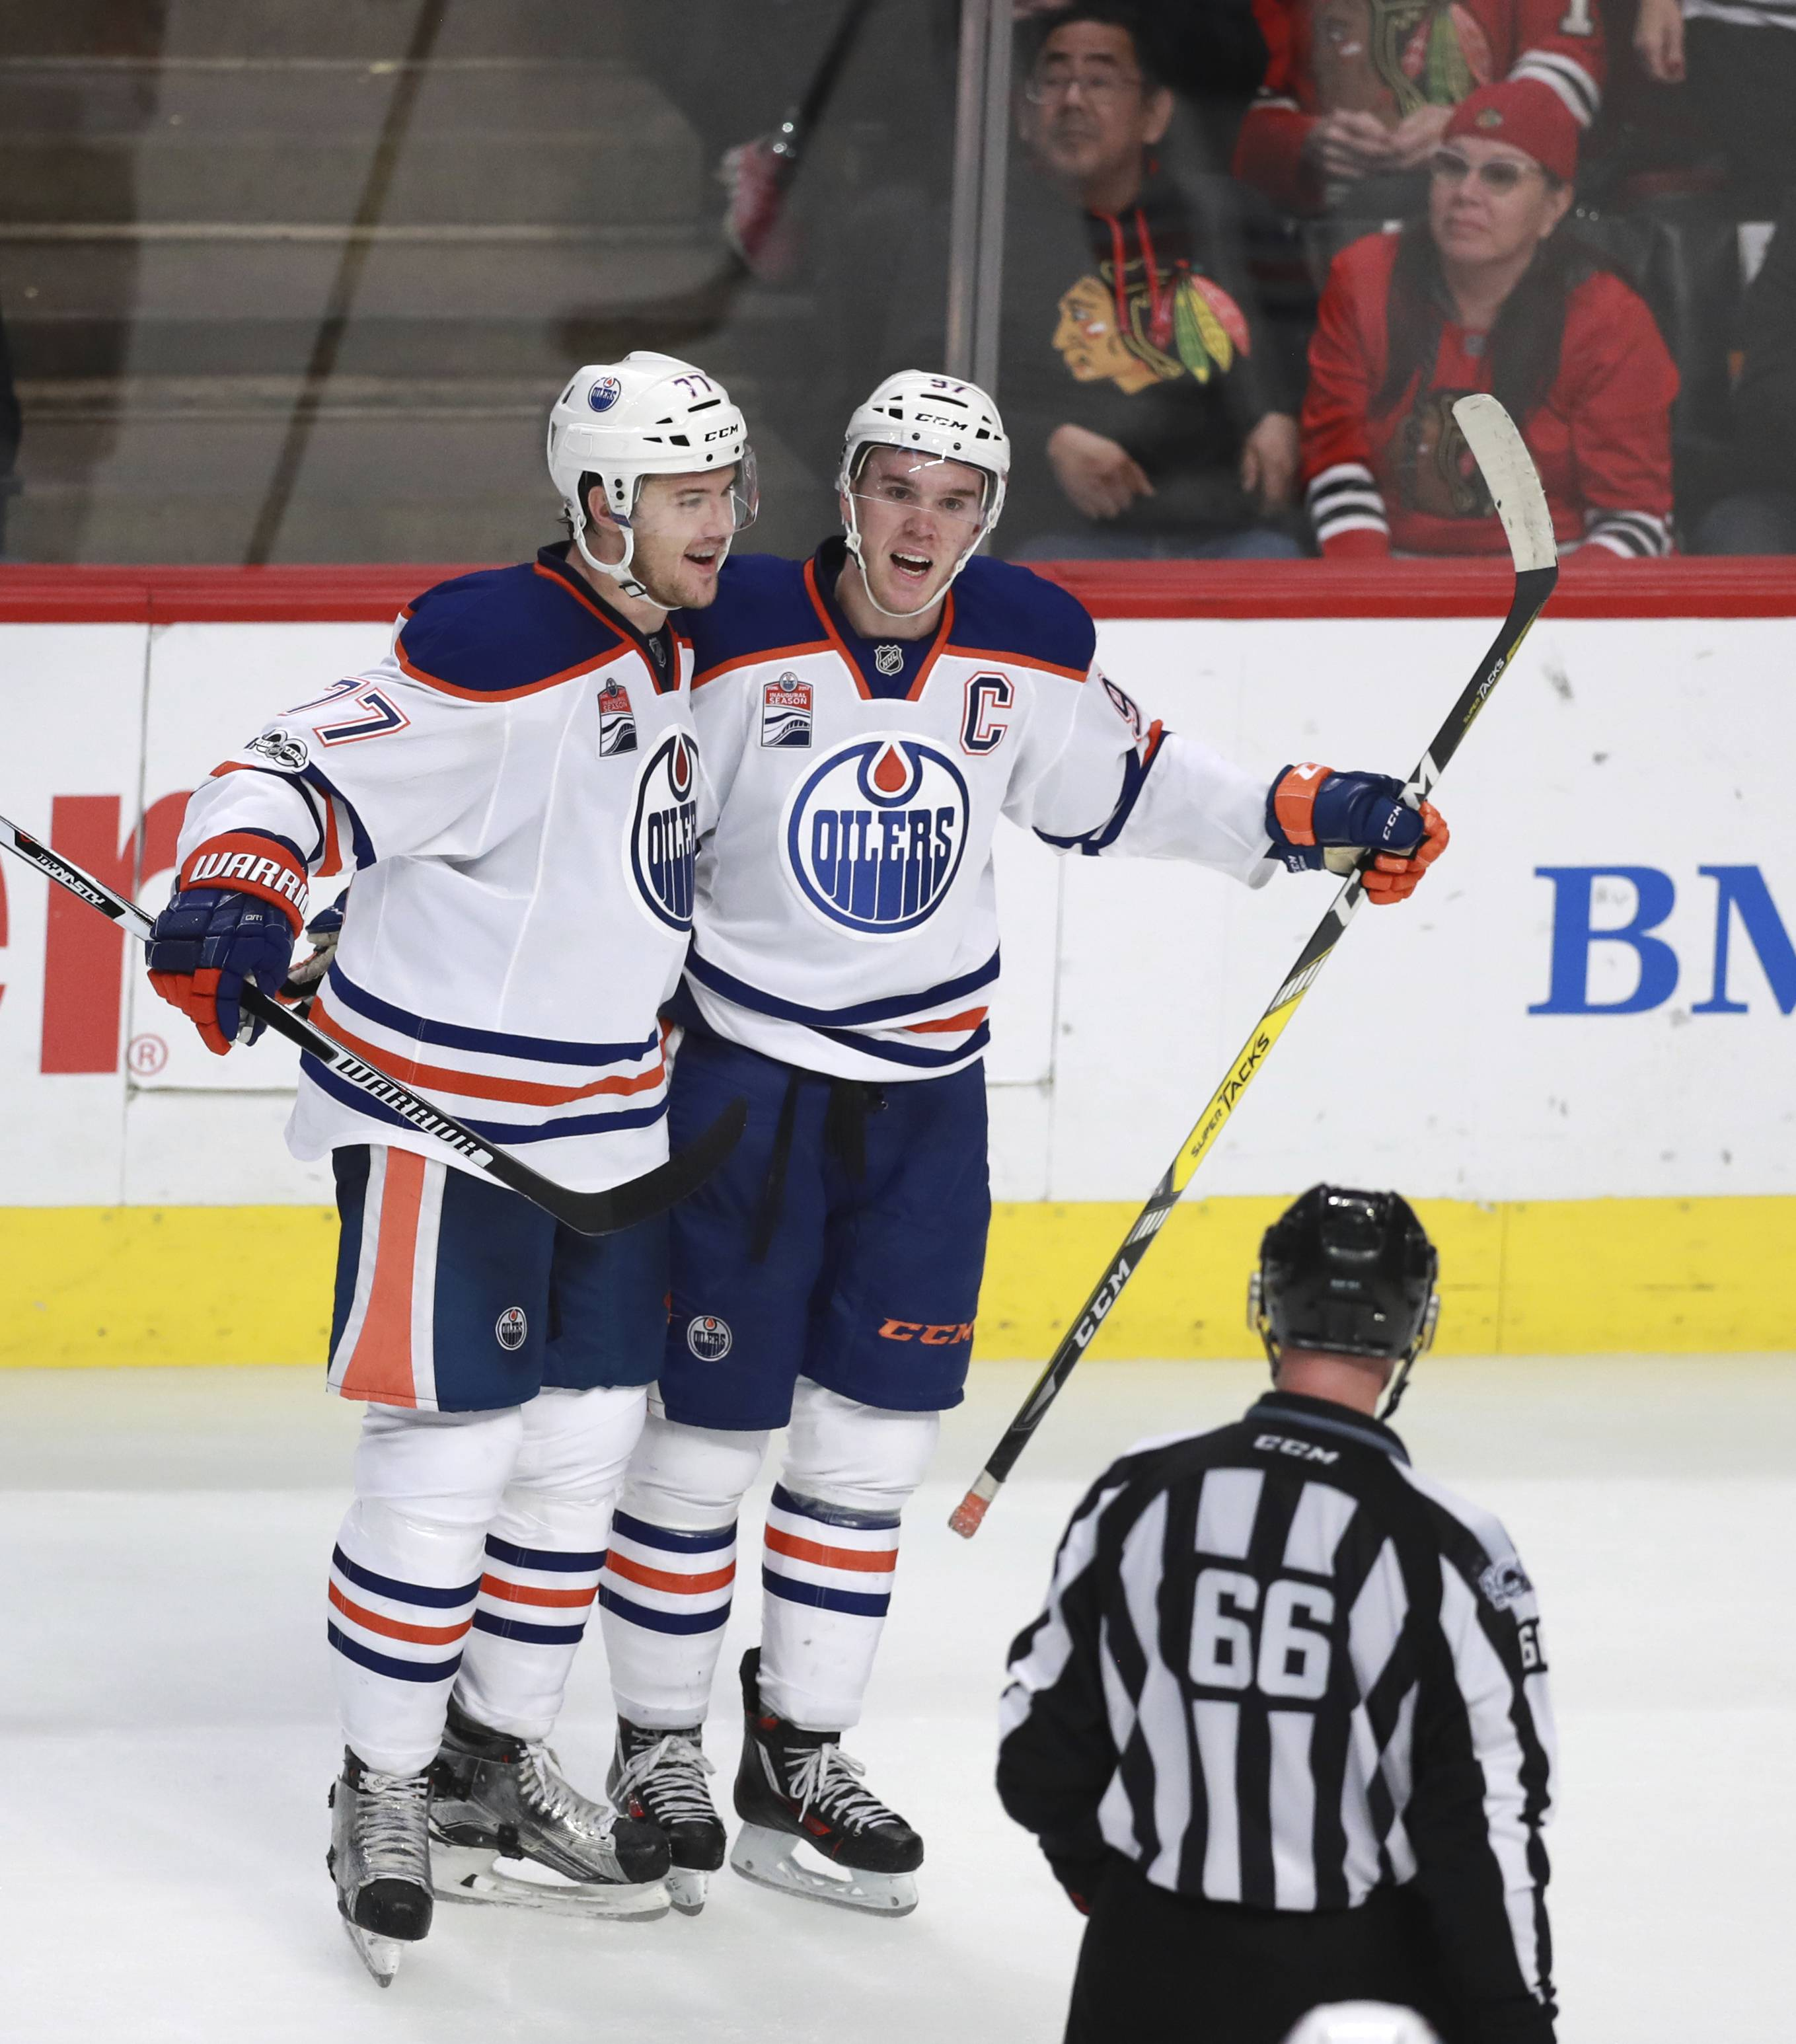 Edmonton Oilers center Connor McDavid (97) celebrates his empty net goal against the Chicago Blackhawks with teammate Oscar Klefbom (77) during the third period of an NHL hockey game Saturday, Feb. 18, 2017, in Chicago. (AP Photo/Jeff Haynes)